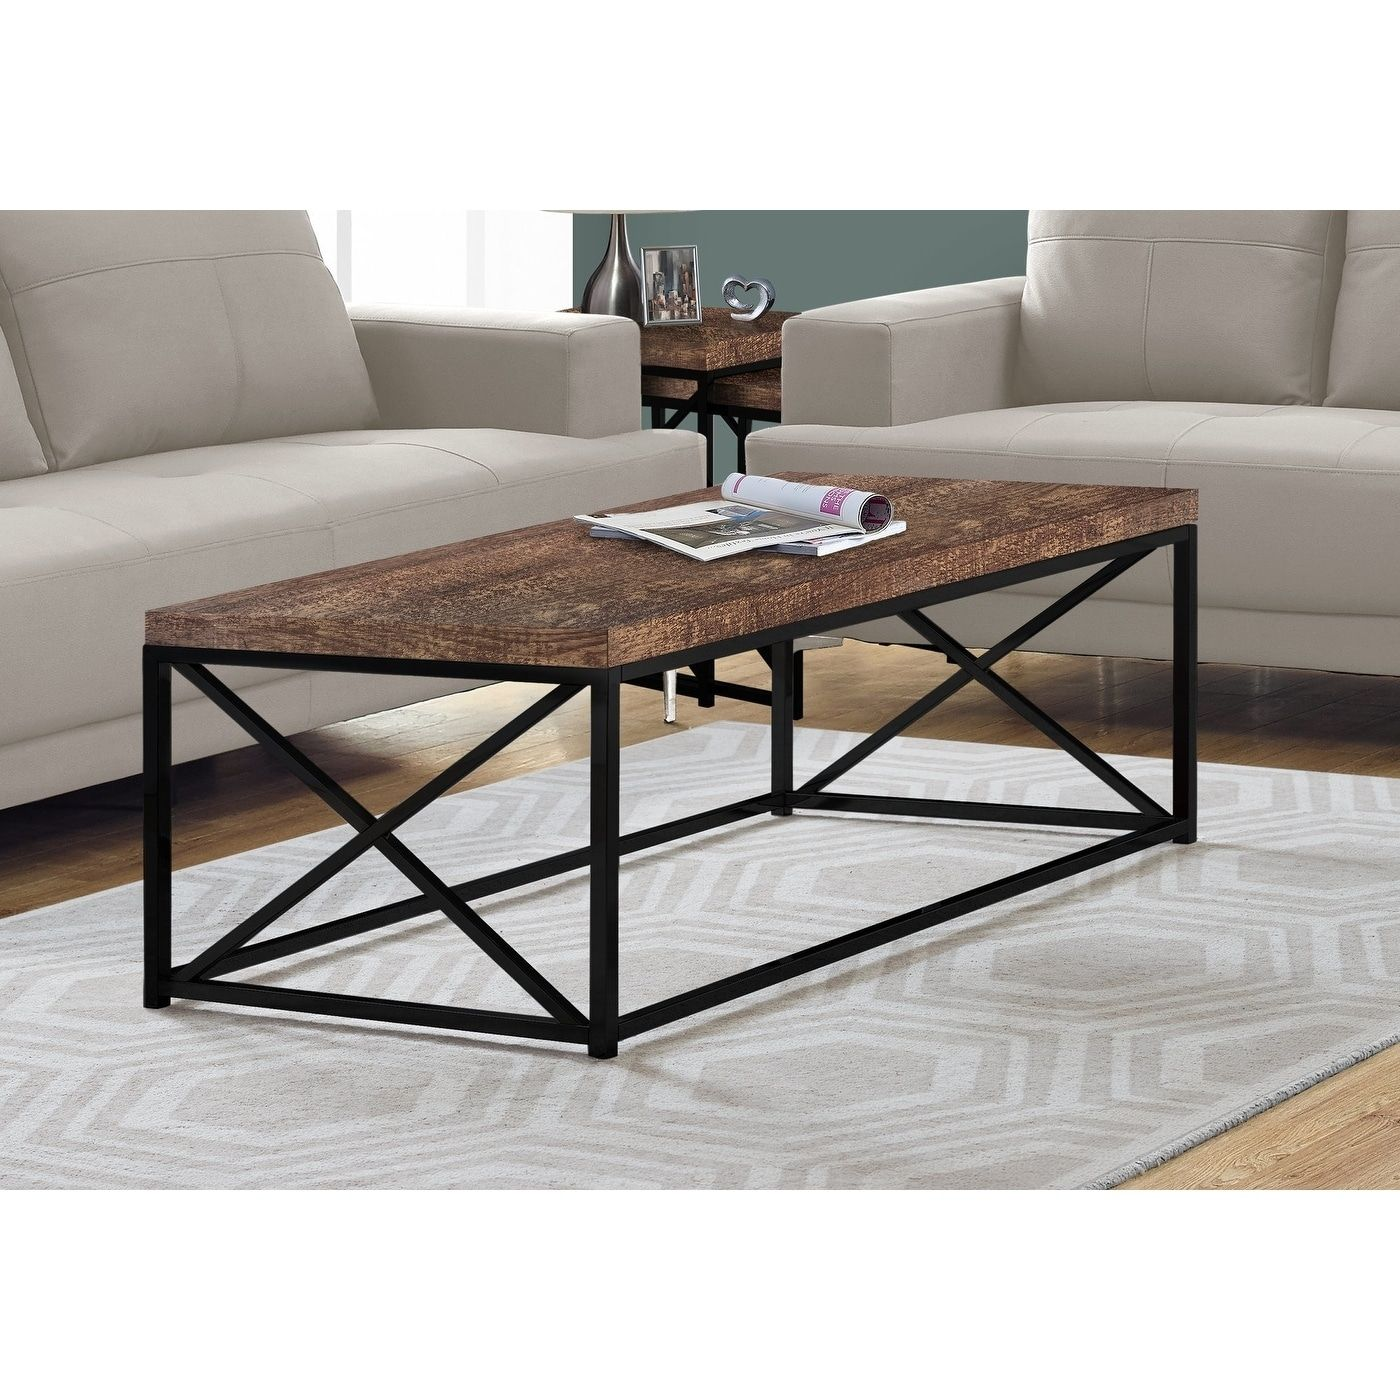 Coffee Table Brown Reclaimed Wood Look Black Metal Grey Wood